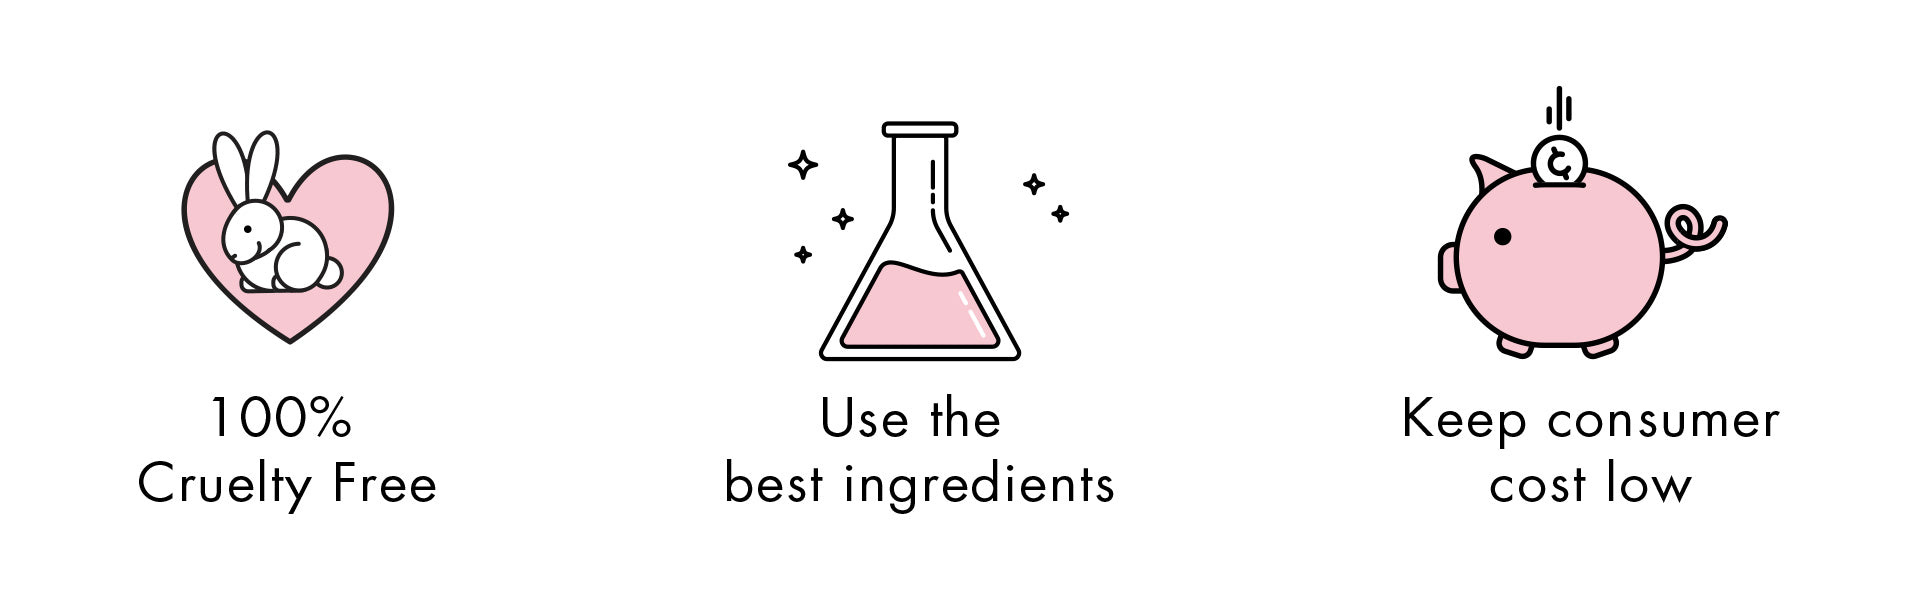 100% cruelty-free, use the best ingredients, and keep consumer costs low